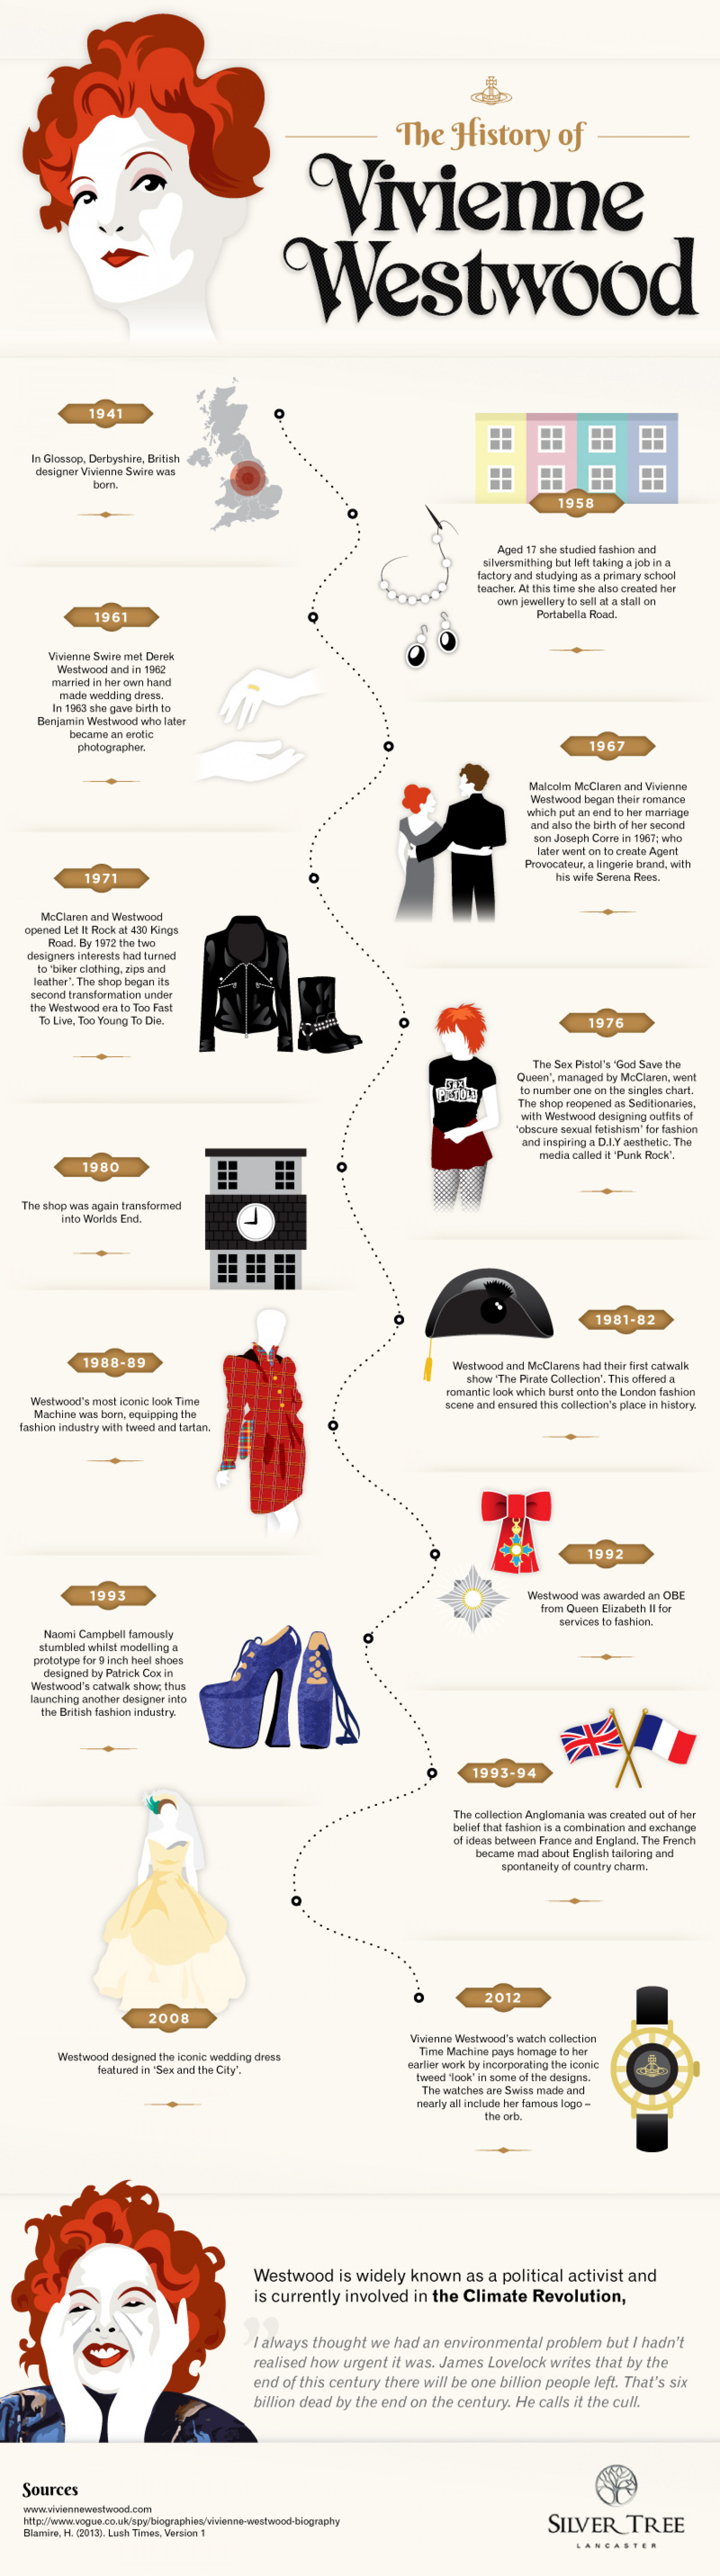 The History of Vivienne Westwood Infographic